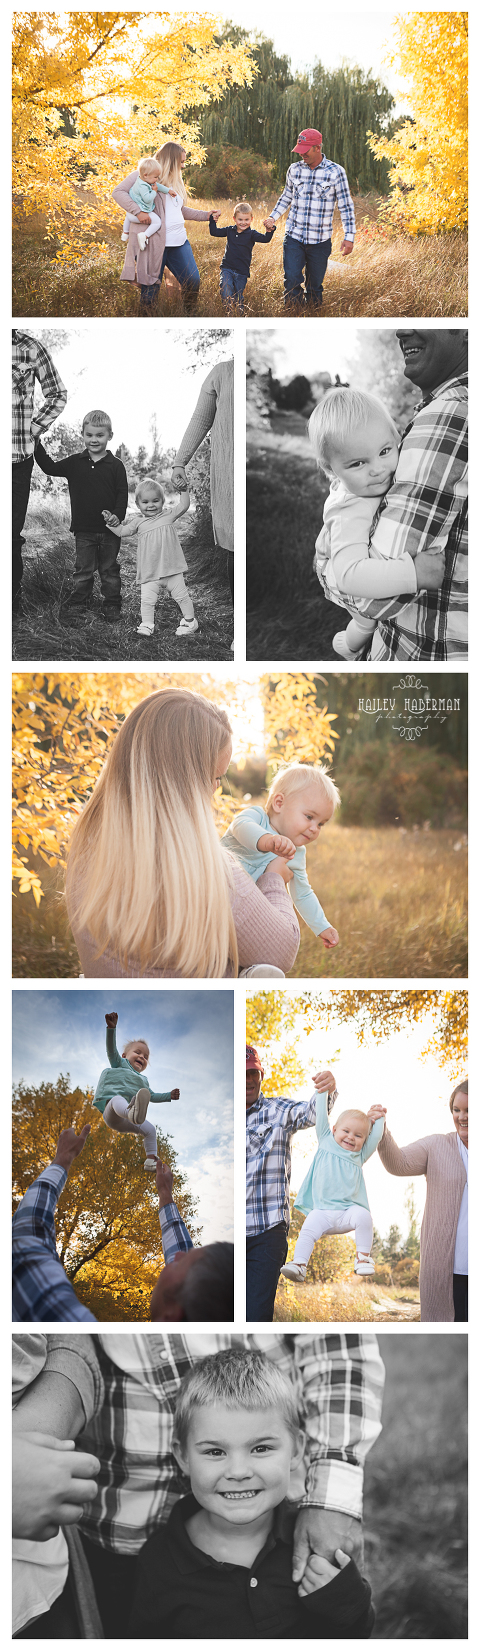 Fowler Lifestyle Family Session by Hailey Haberman in Ellensburg WA